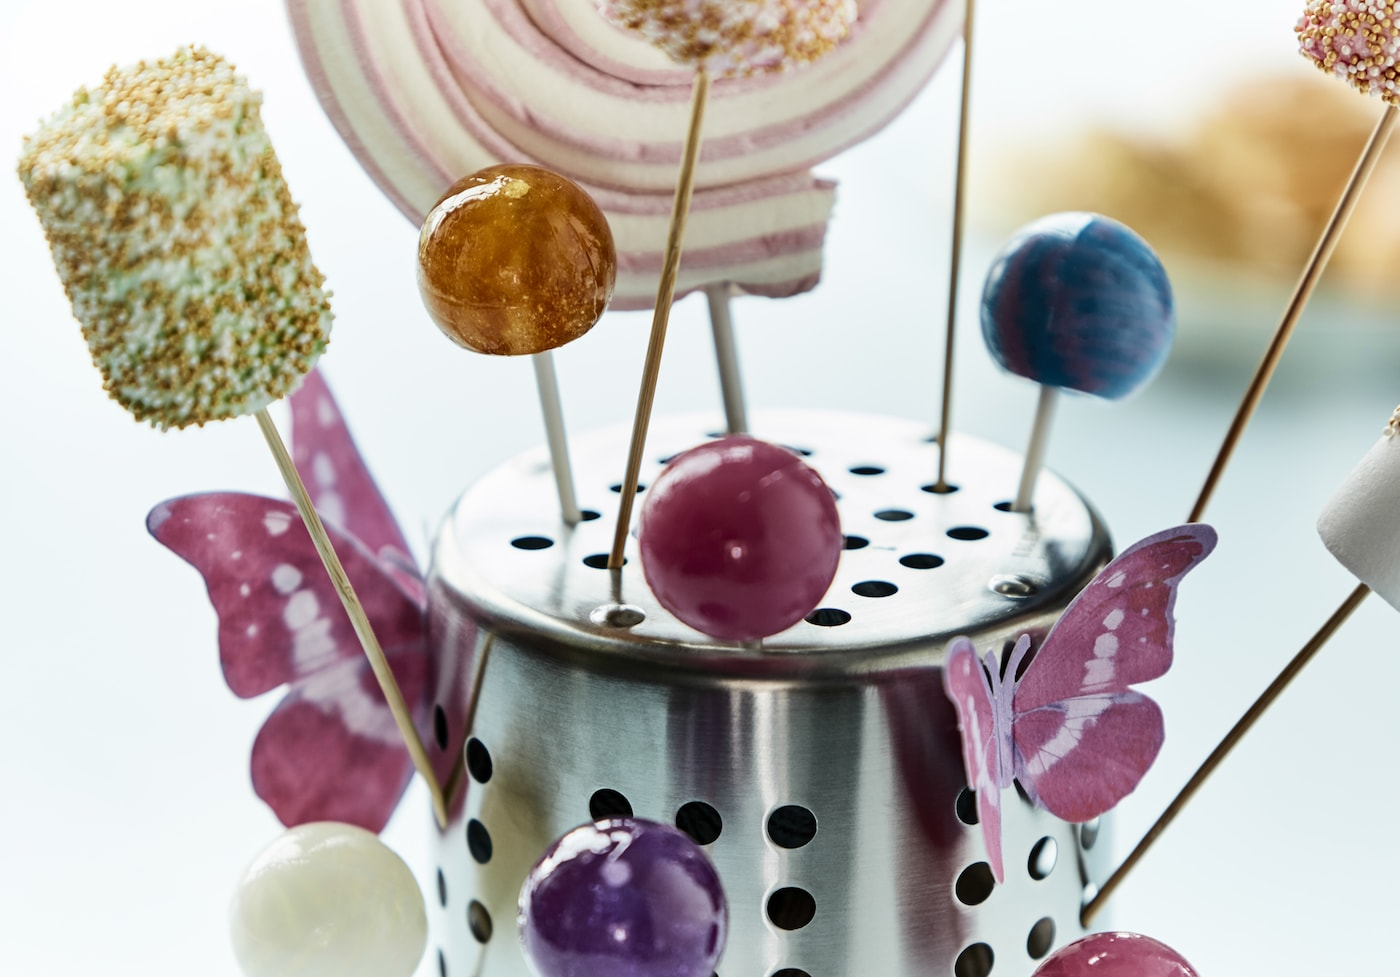 A close-up image of an IKEA ORDNING utensil holder turned upsed down and used as a holder for lollipops.